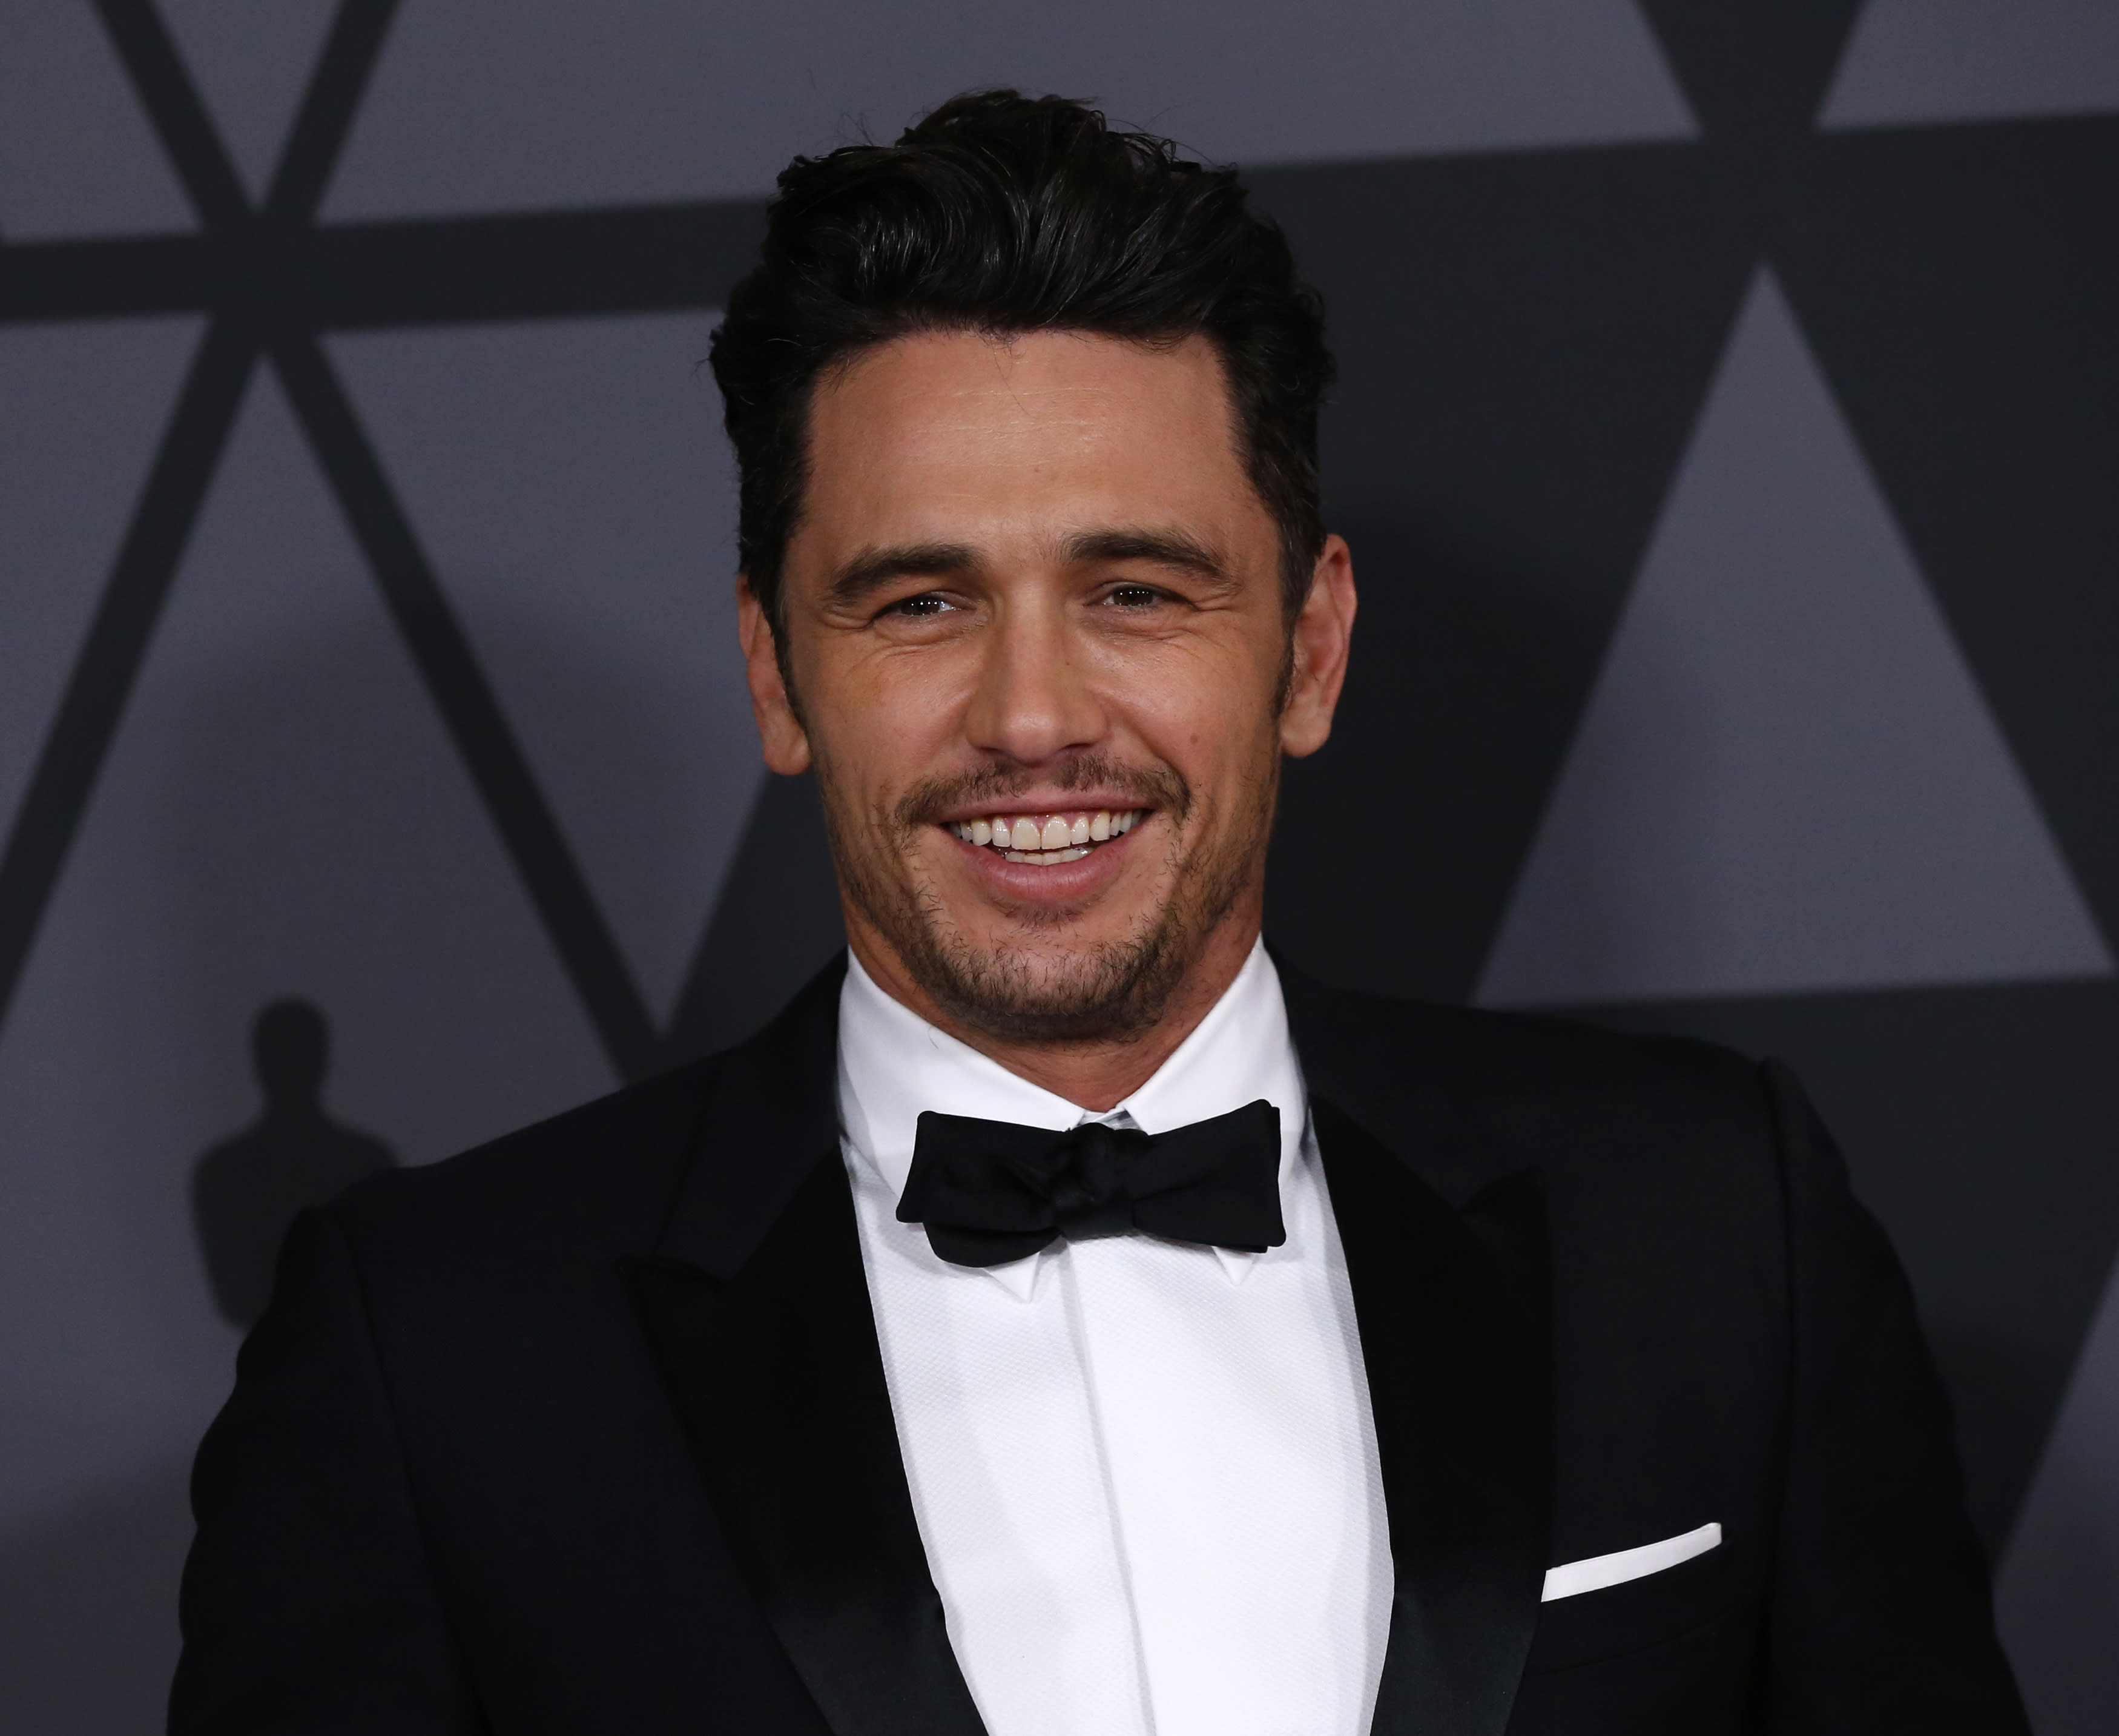 James Franco sued for alleged sexual exploitation: A timeline of the accusations against him